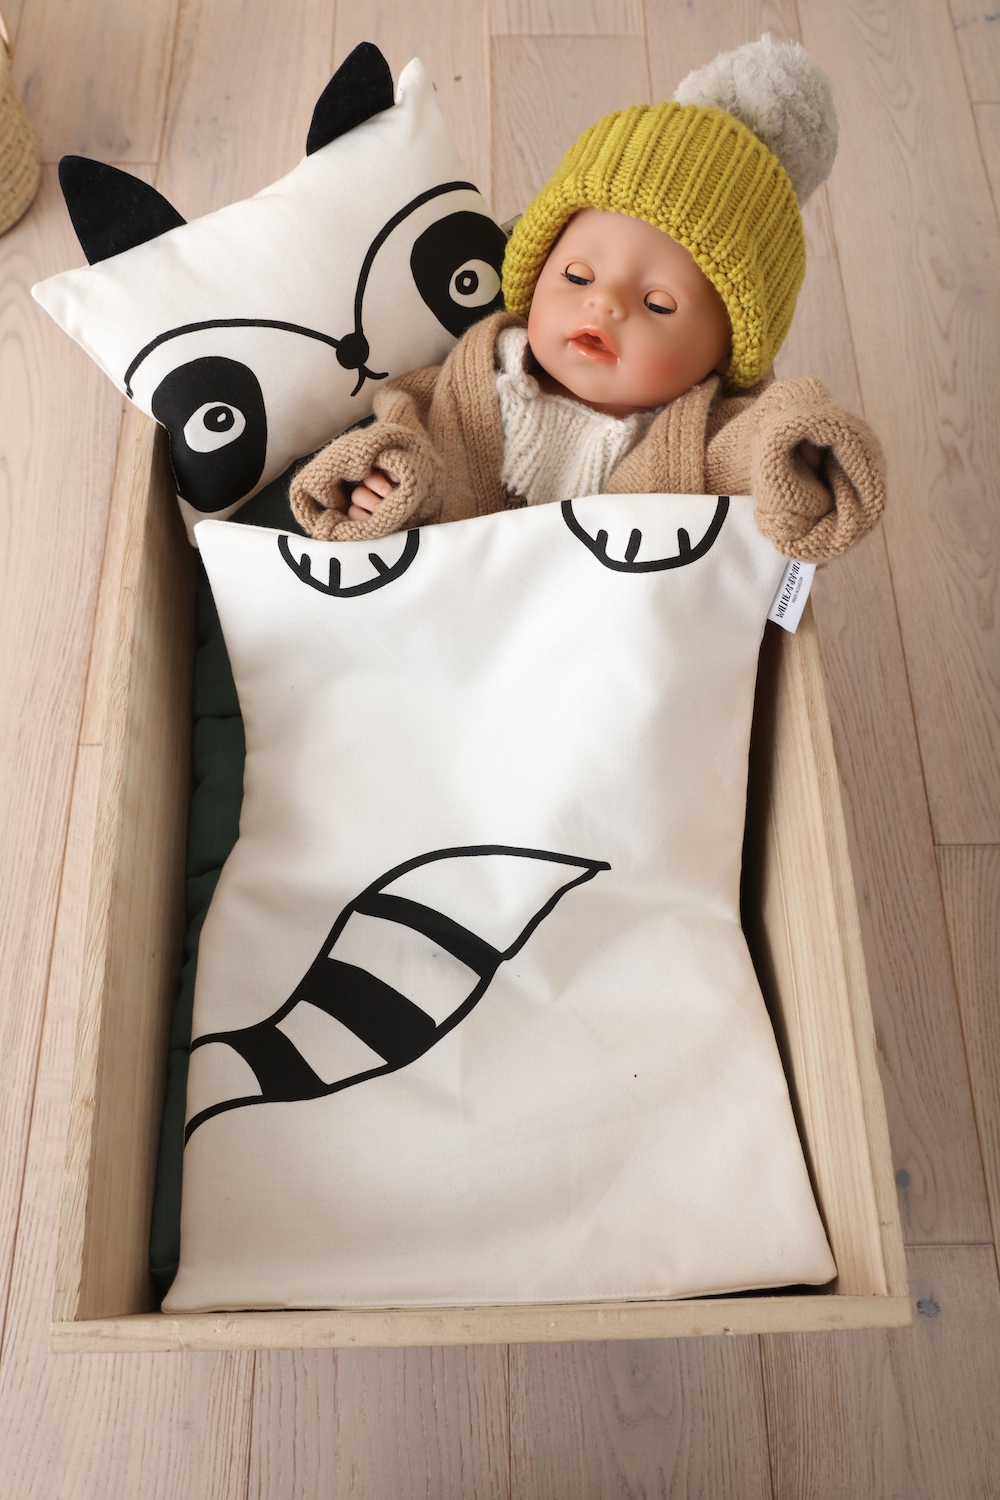 Willie_millie_bedding_doll_bed_raccoon